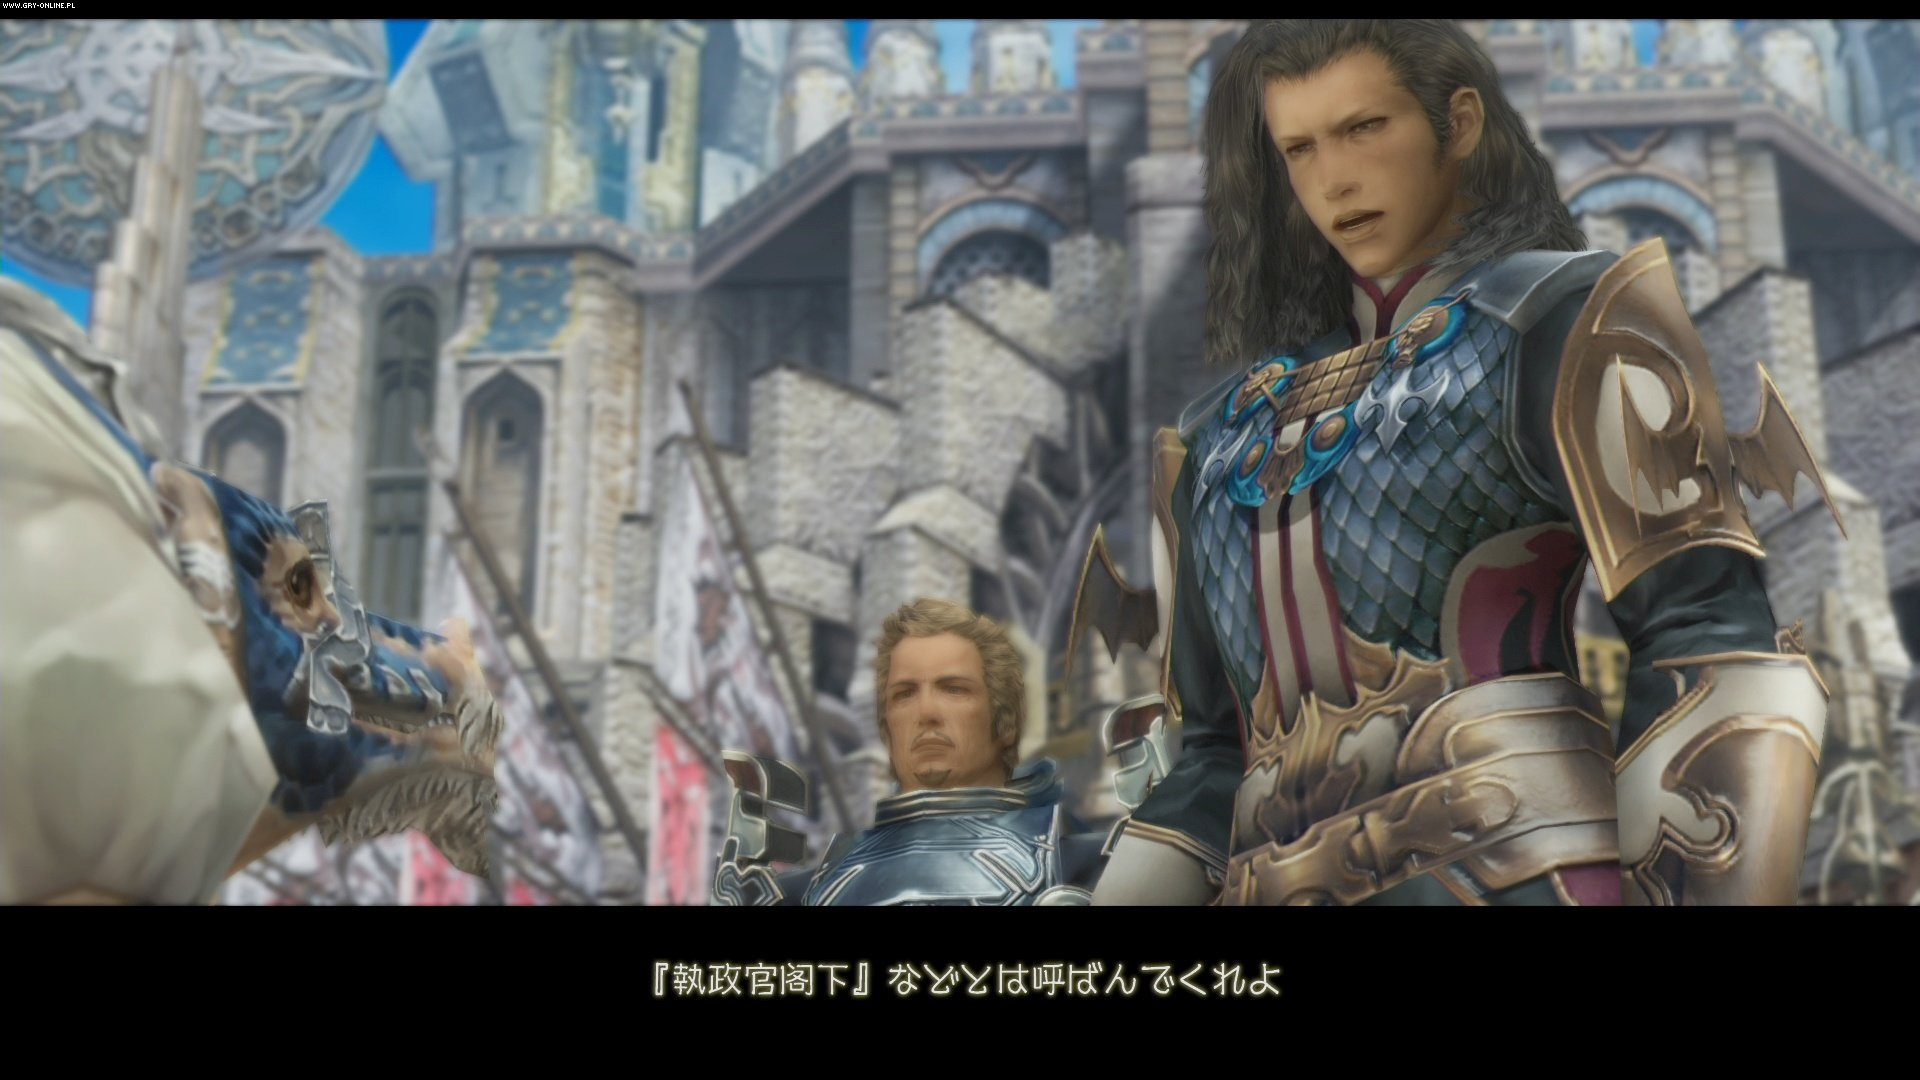 Final Fantasy XII: The Zodiac Age PS4 Gry Screen 13/71, Square-Enix / Eidos